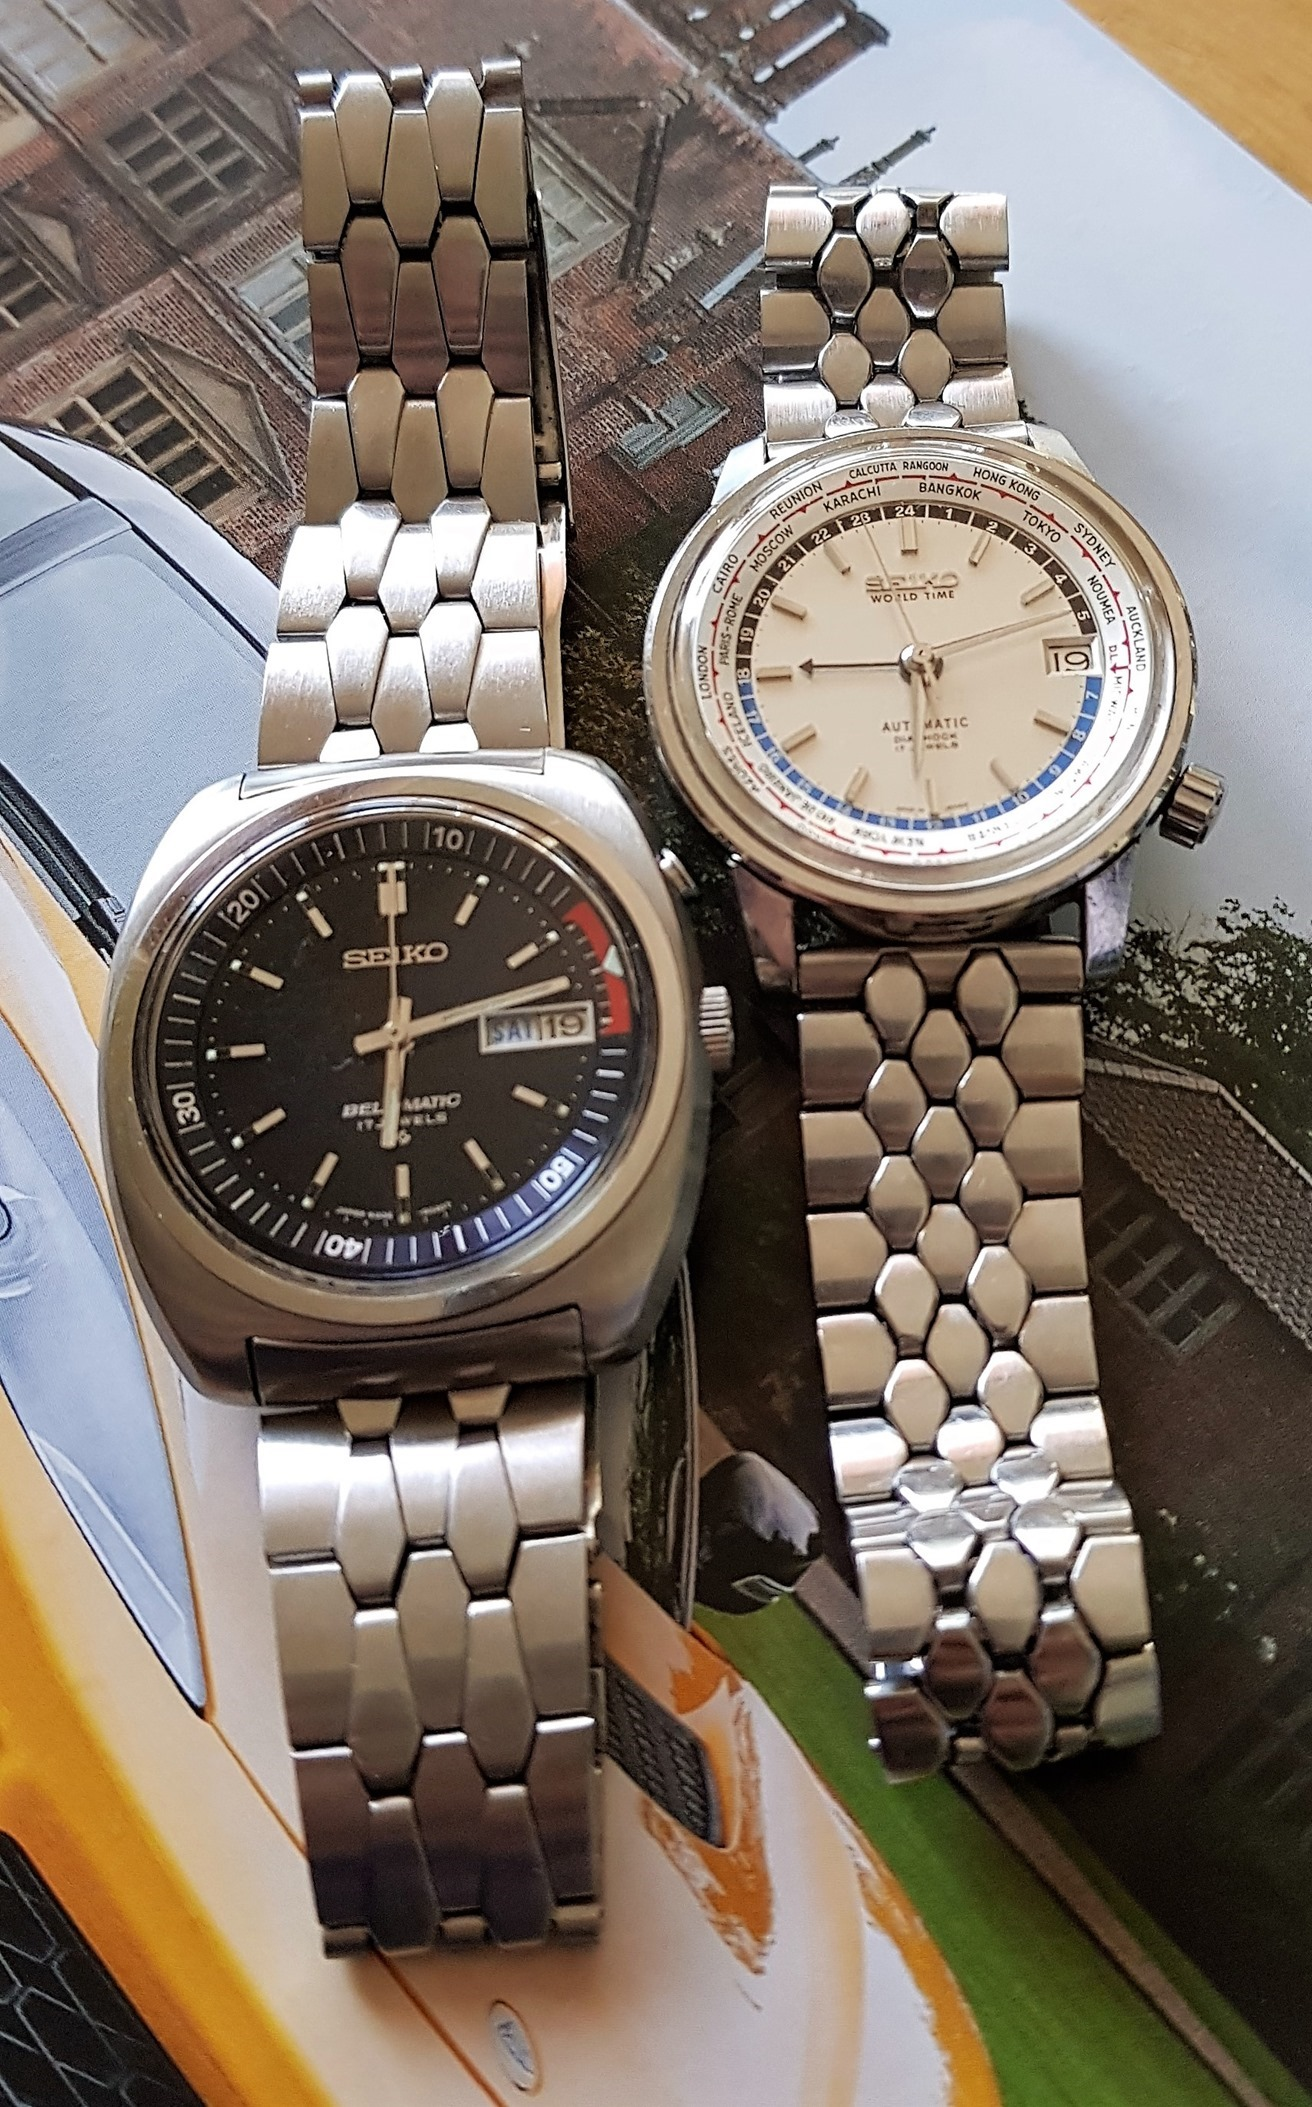 Seiko Diamond back and coffin link bracelets fitted to 6217-7000 World Time and 4006-6031 Bell Matic